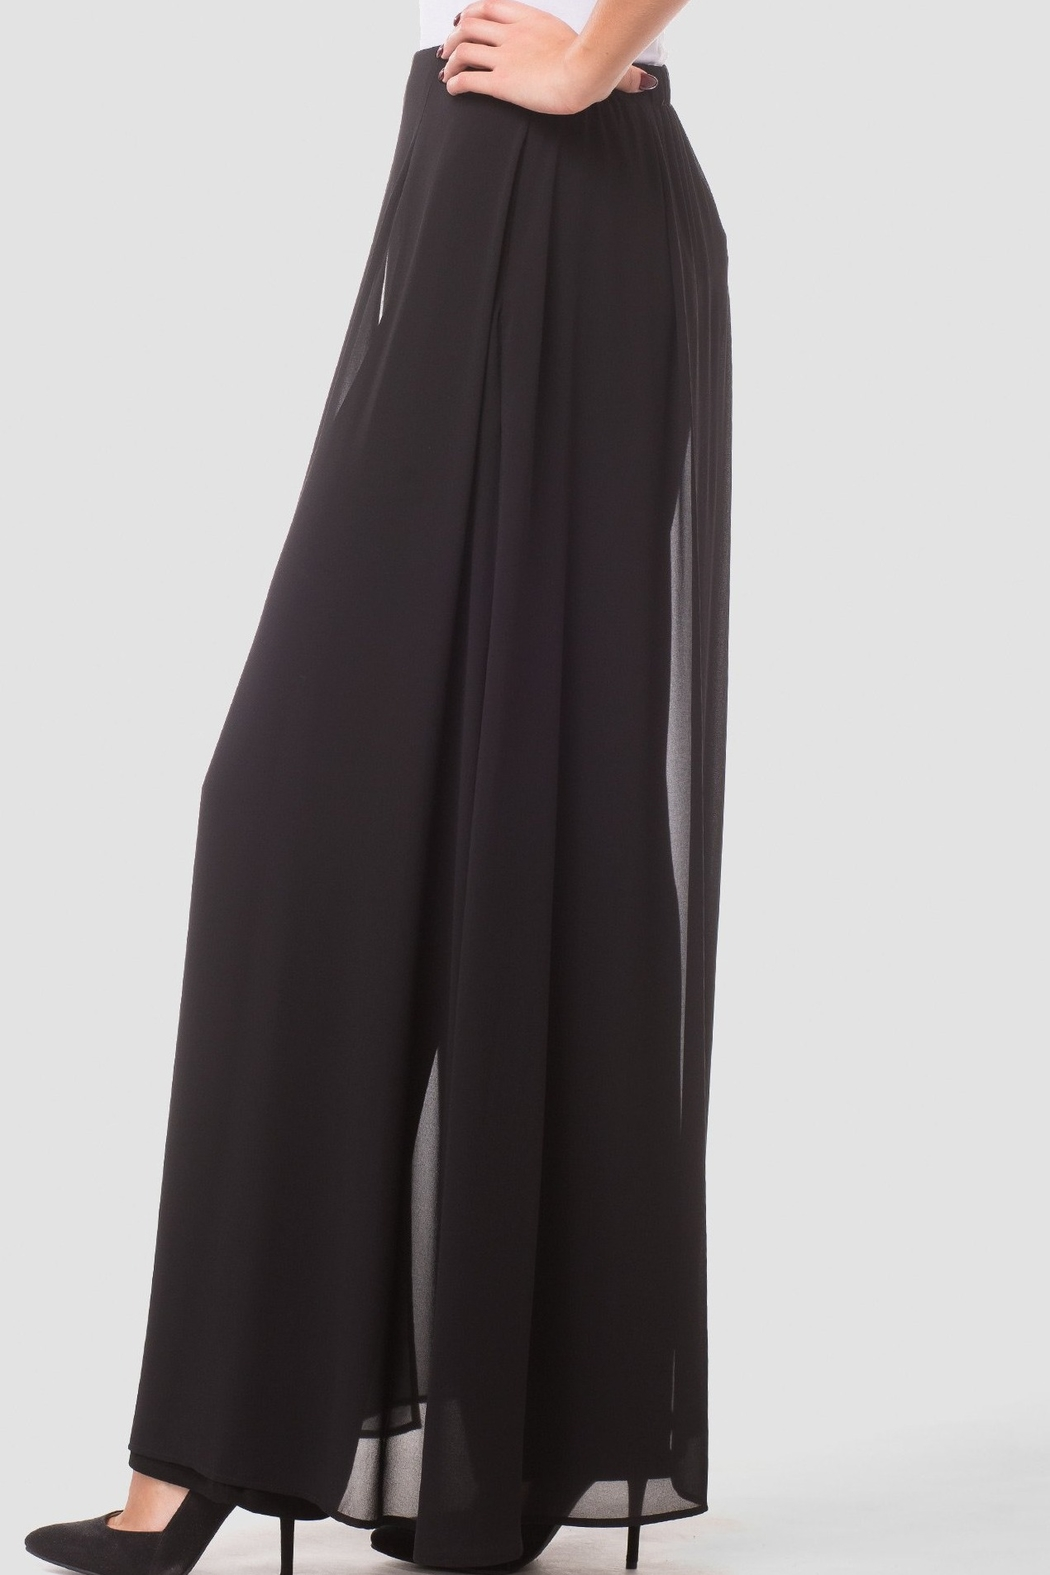 Joseph Ribkoff  Go with the Flow Wide Leg Pants - Back Cropped Image